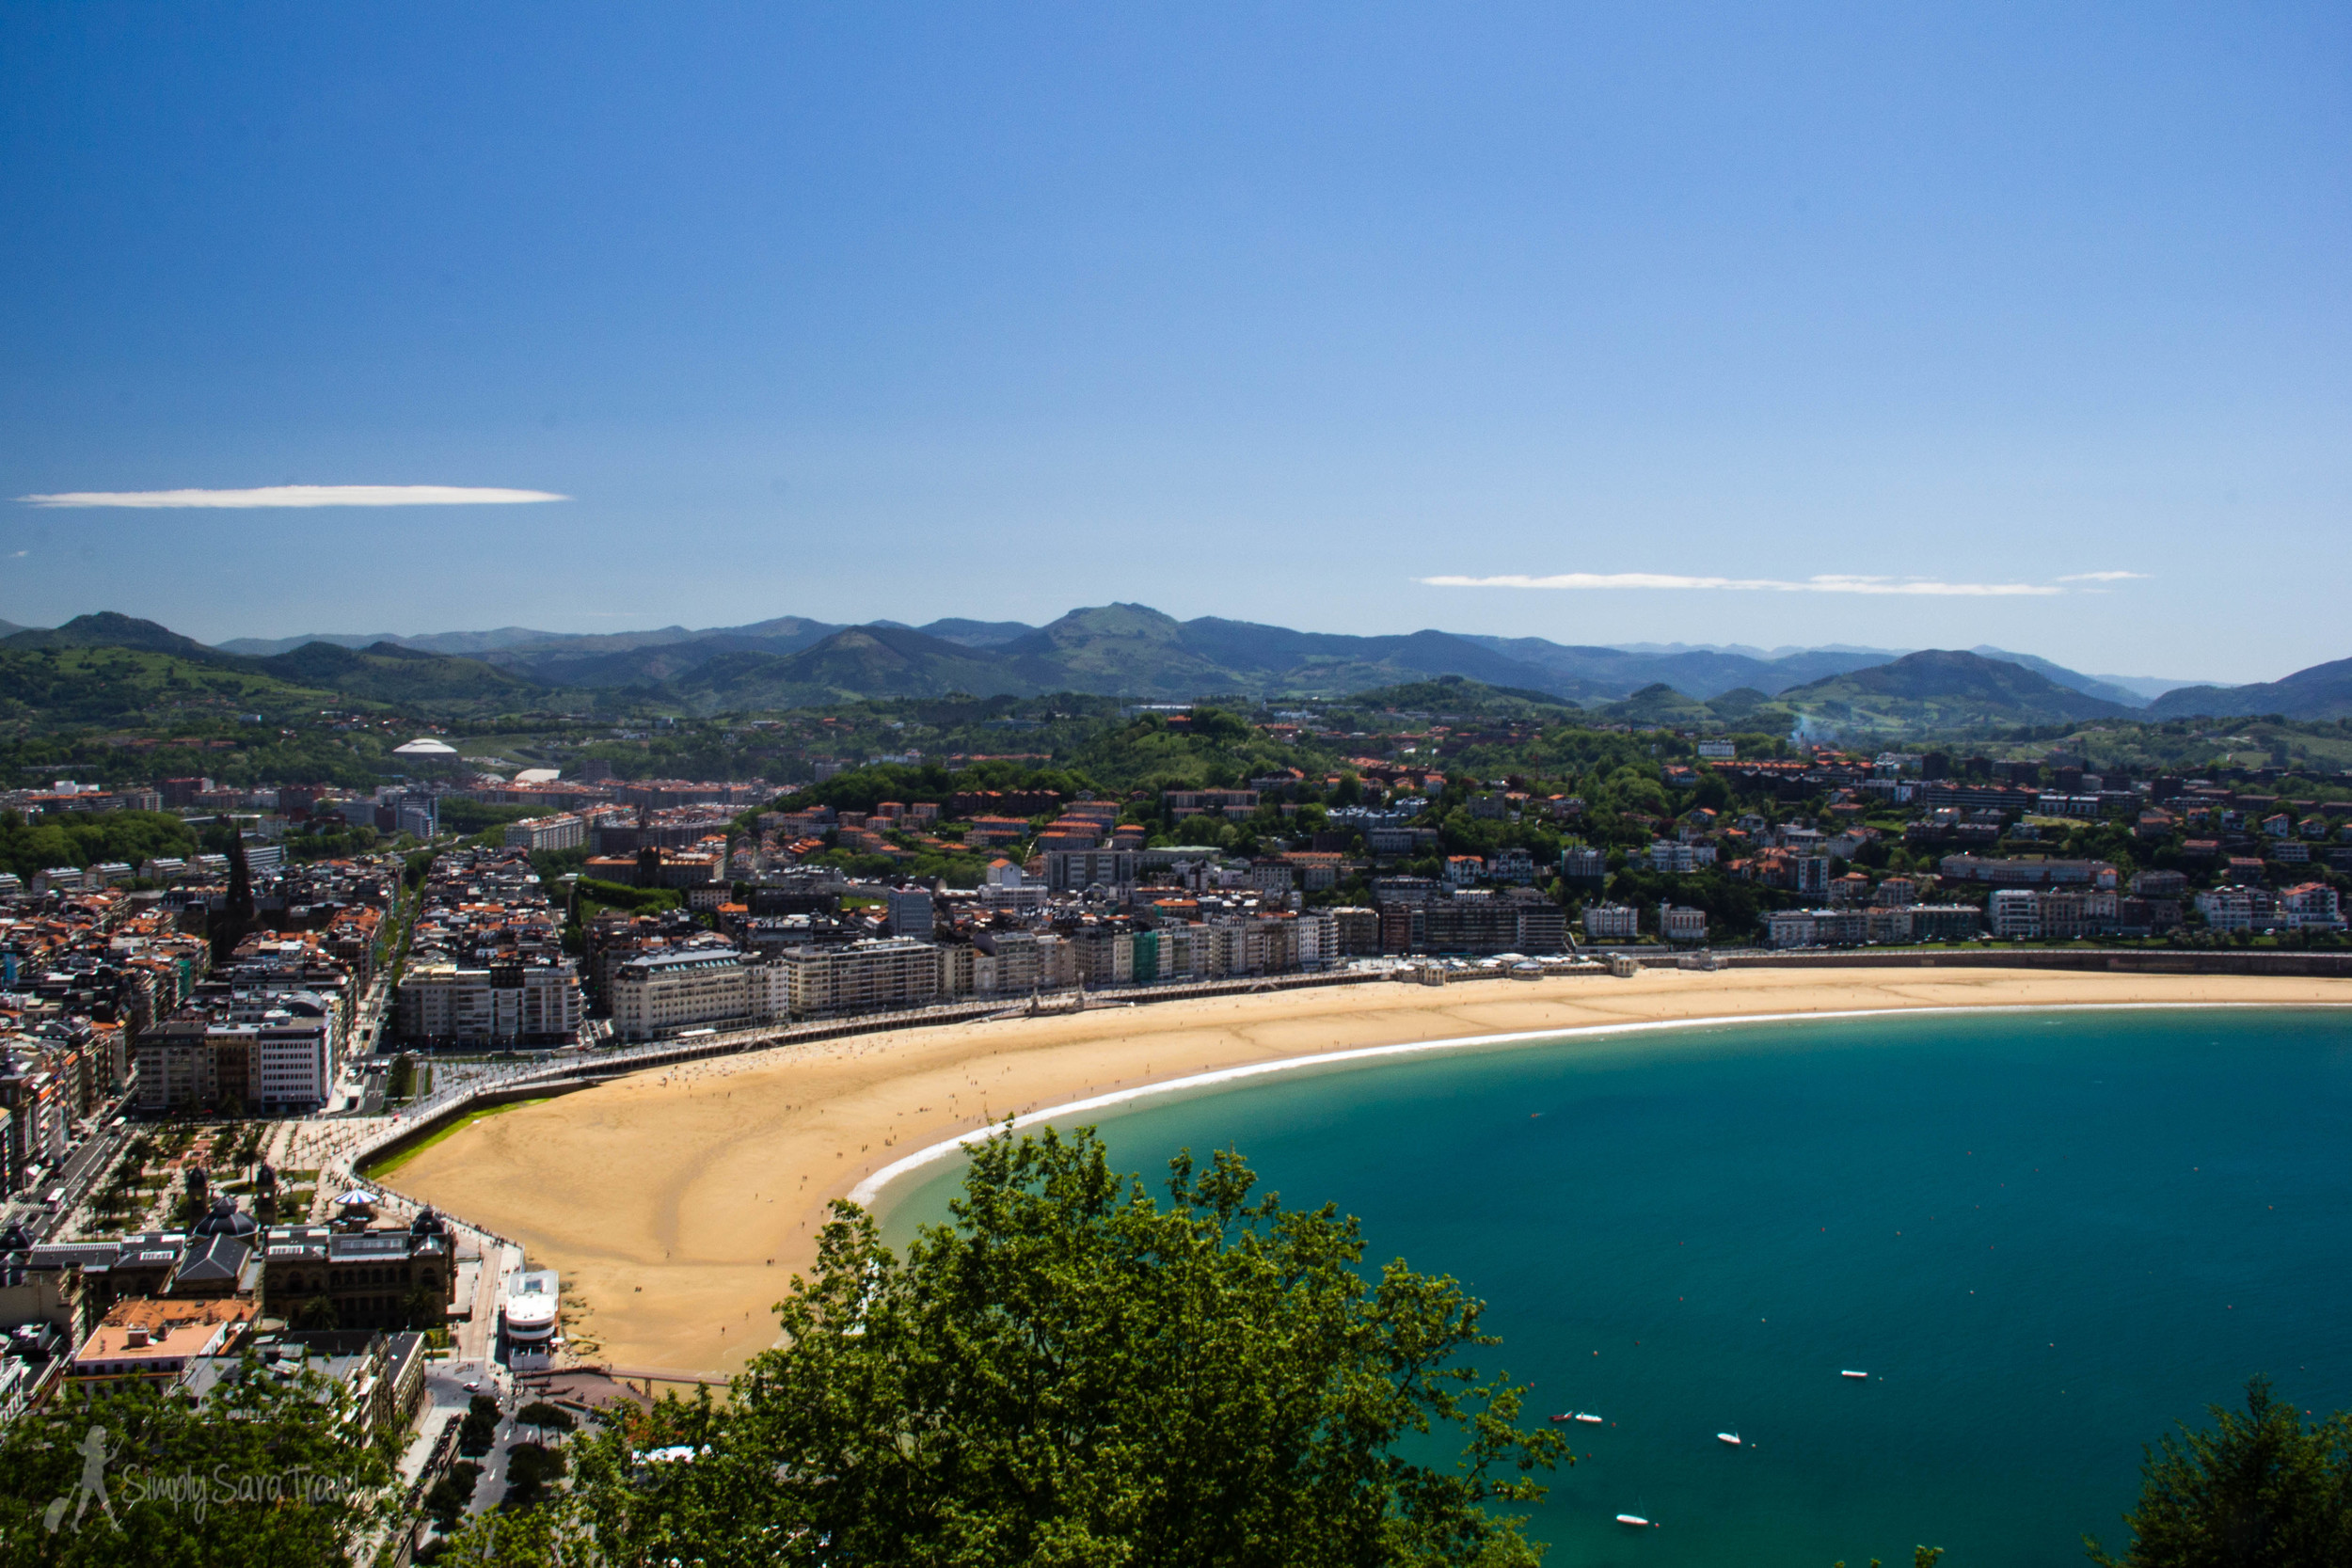 San Sebastián, Spain // Its beach was one we were unprepared for - I'm not sure what we were expected, but it certainly wasn't this, as we did not pack swim suits, towels, nor even sunscreen for the day trip!